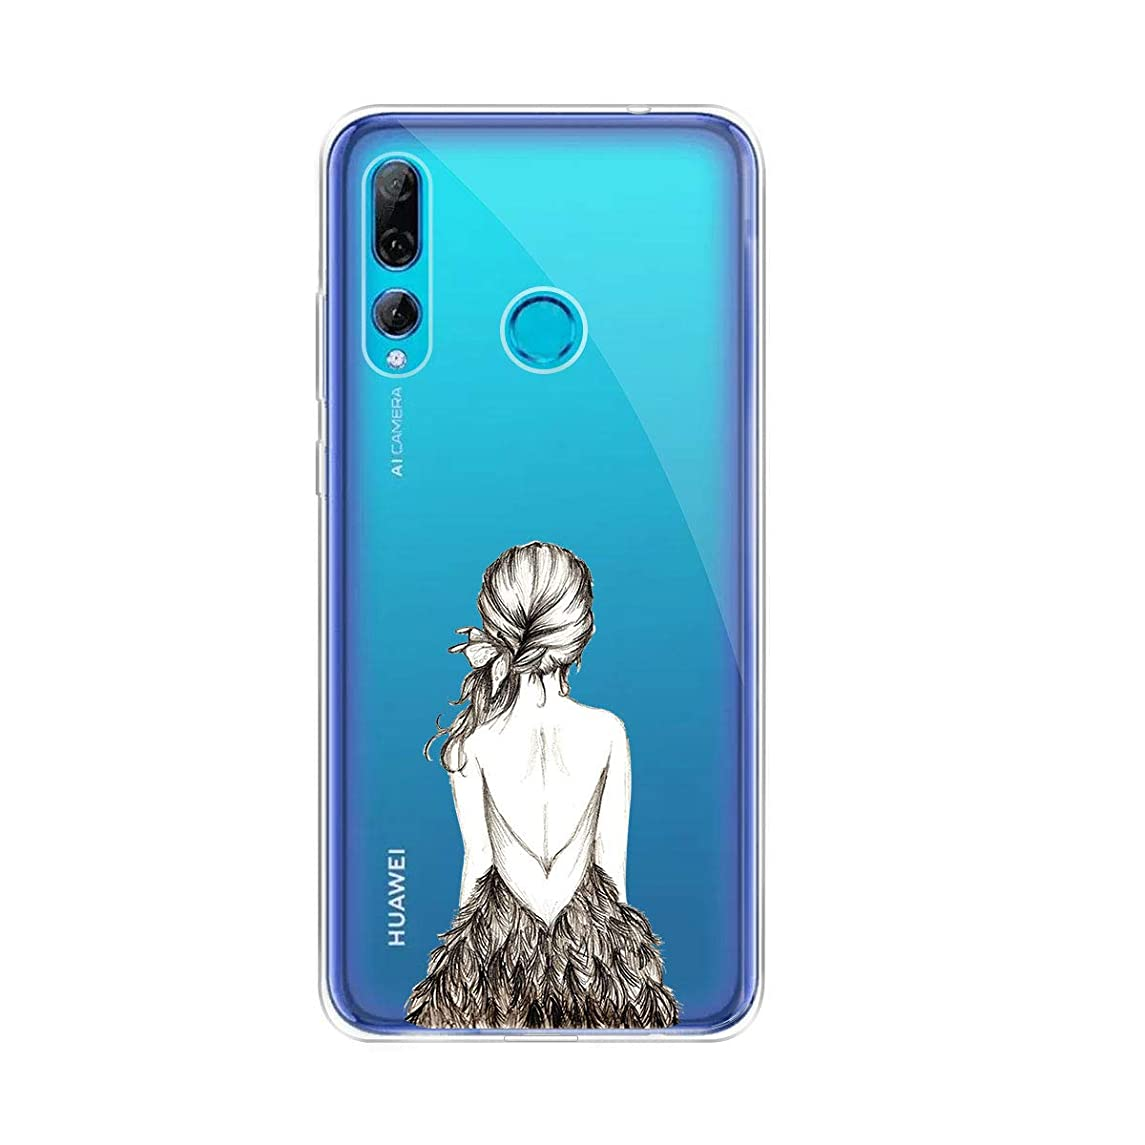 Friendly Dress Transparent TPU Phone Case for Huawei Y9 Prime 2019, KJYF Cover Protection Flexible Bumper Protective Silicone for Huawei Y9 Prime 2019.